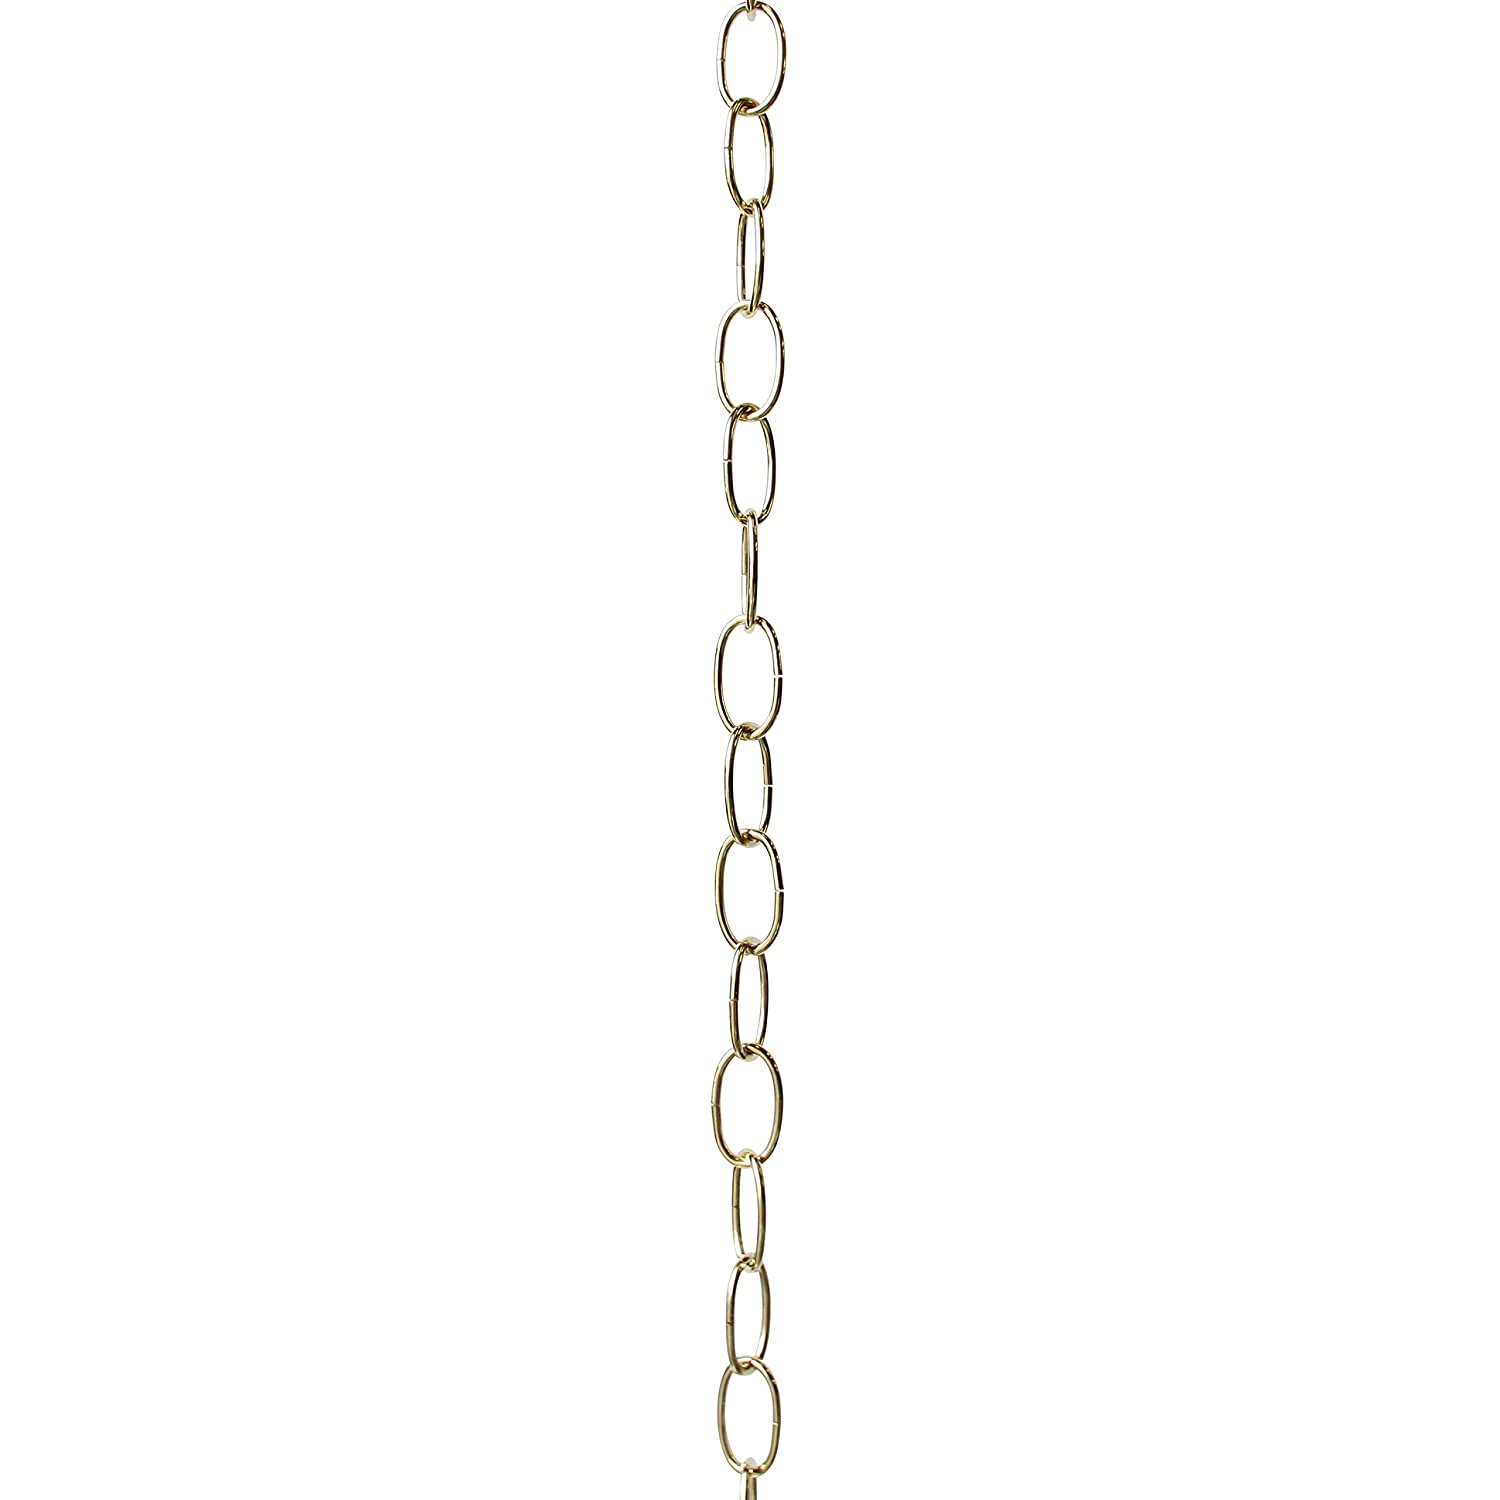 RCH Hardware CH-S56-12-SC-3 10 Gauge Decorative Solid Steel Standard Link Fixture Chain 3 Foot Increments Satin Chrome Finish